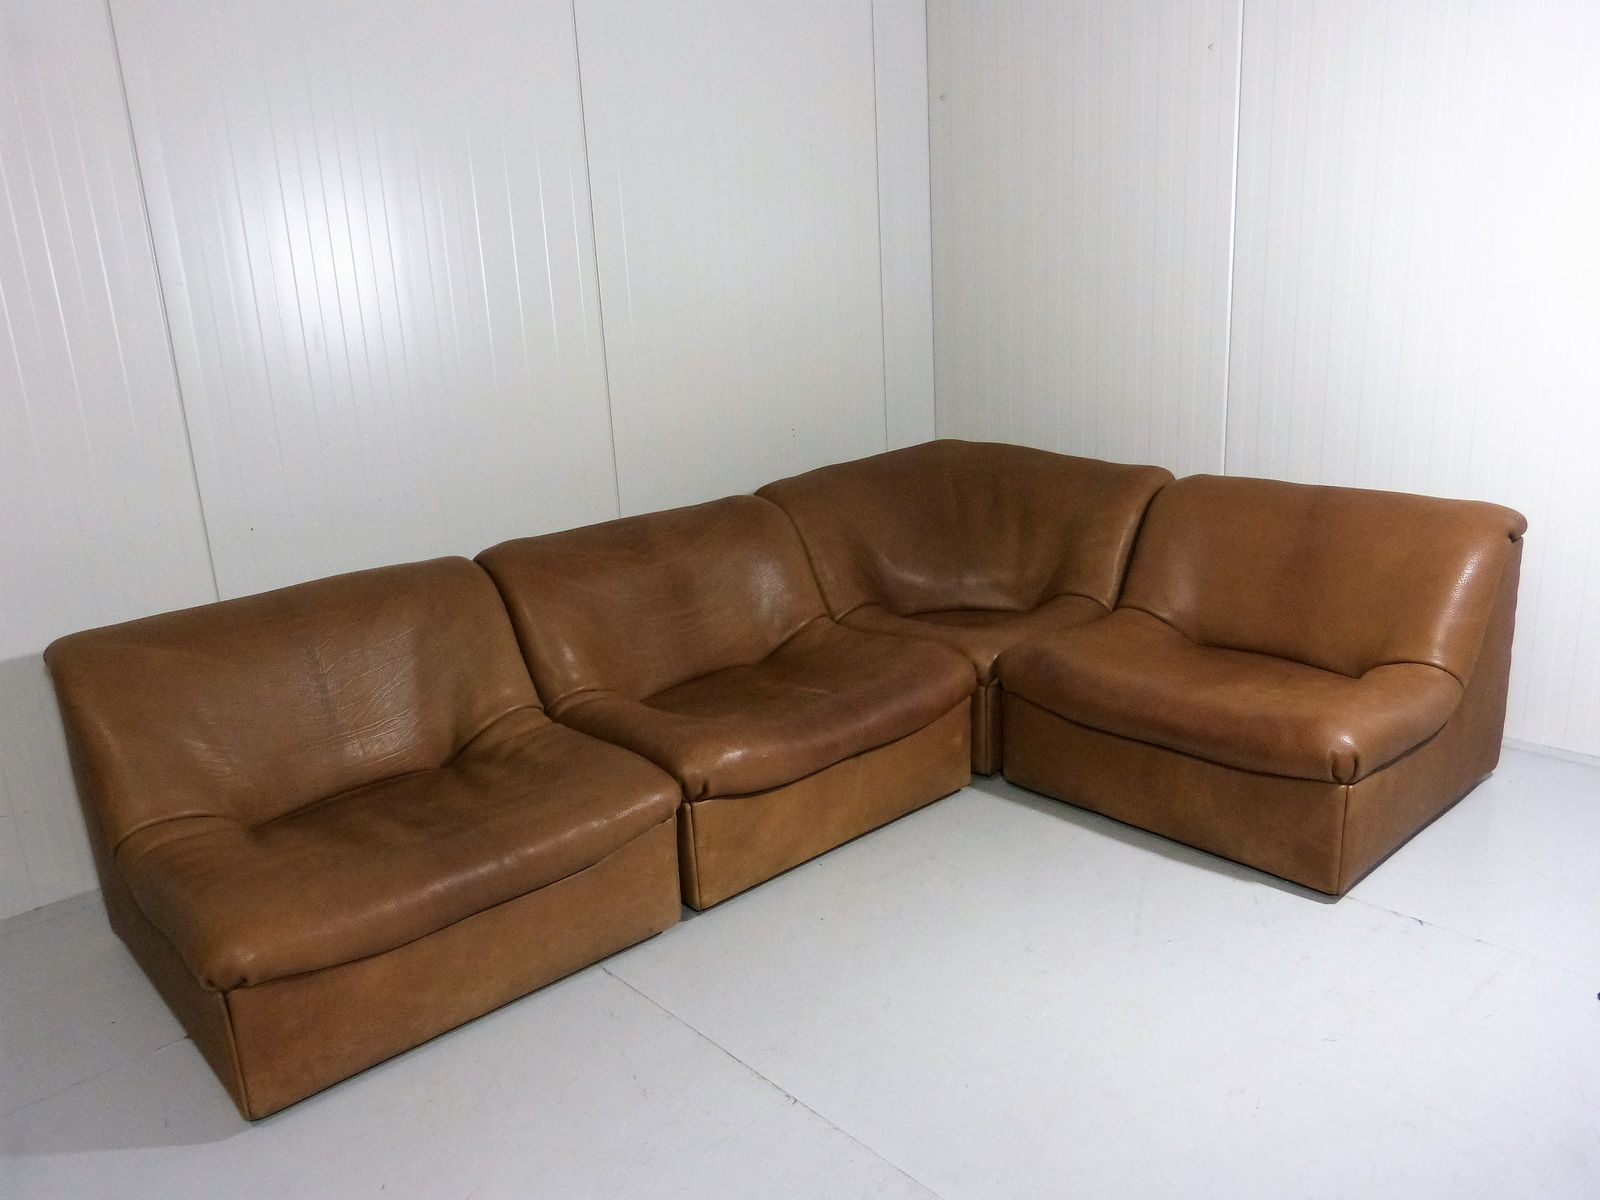 ds 46 buffalo leather modular sofa from de sede 1970s for. Black Bedroom Furniture Sets. Home Design Ideas